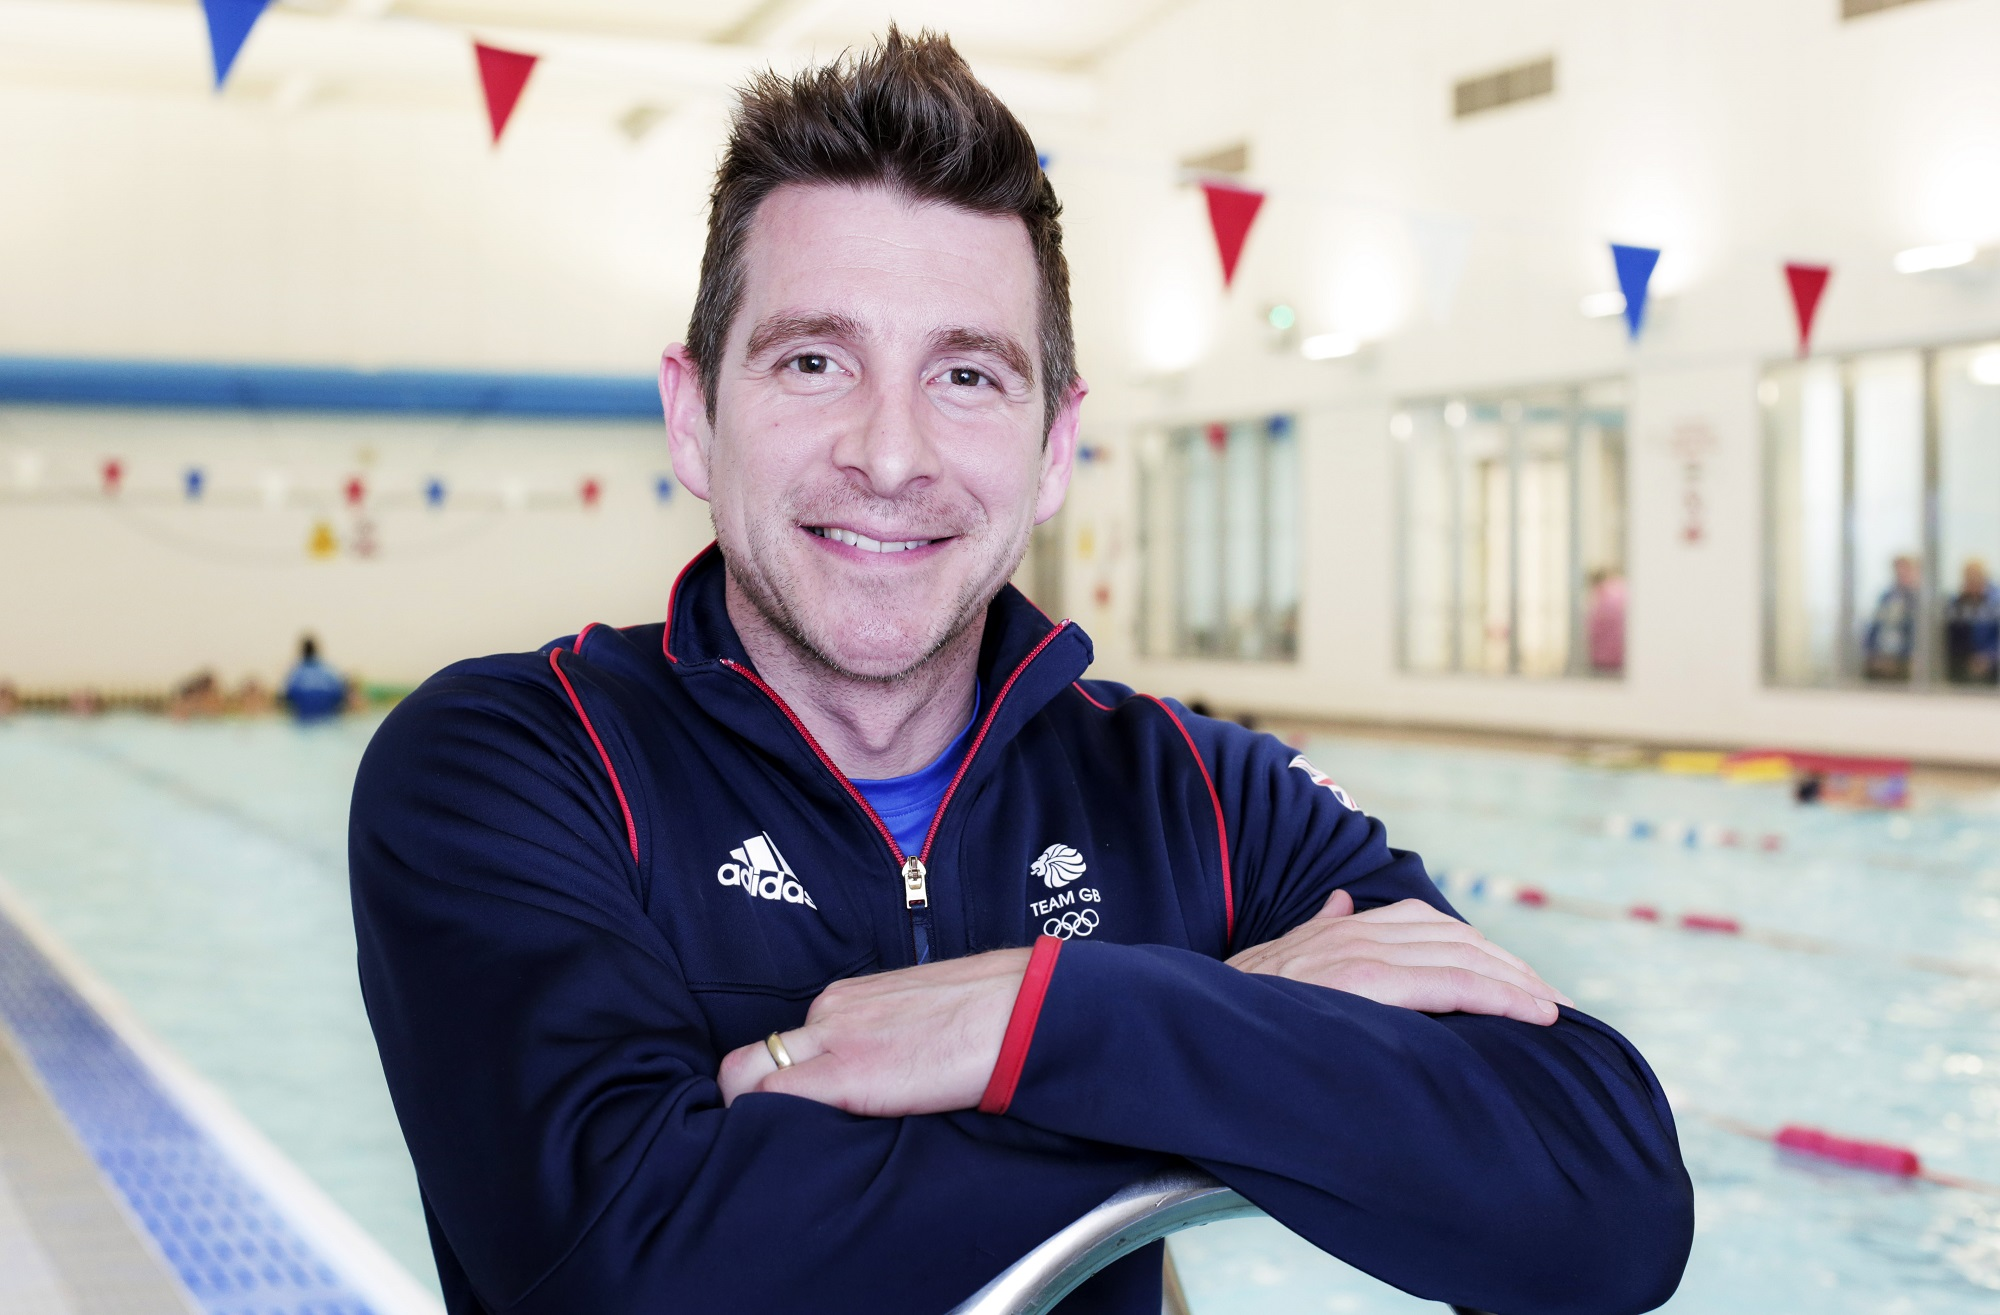 Double Olympic Games Swimmer and Former Commonwealth Champion Joins Boutique Consultancy Rambutan